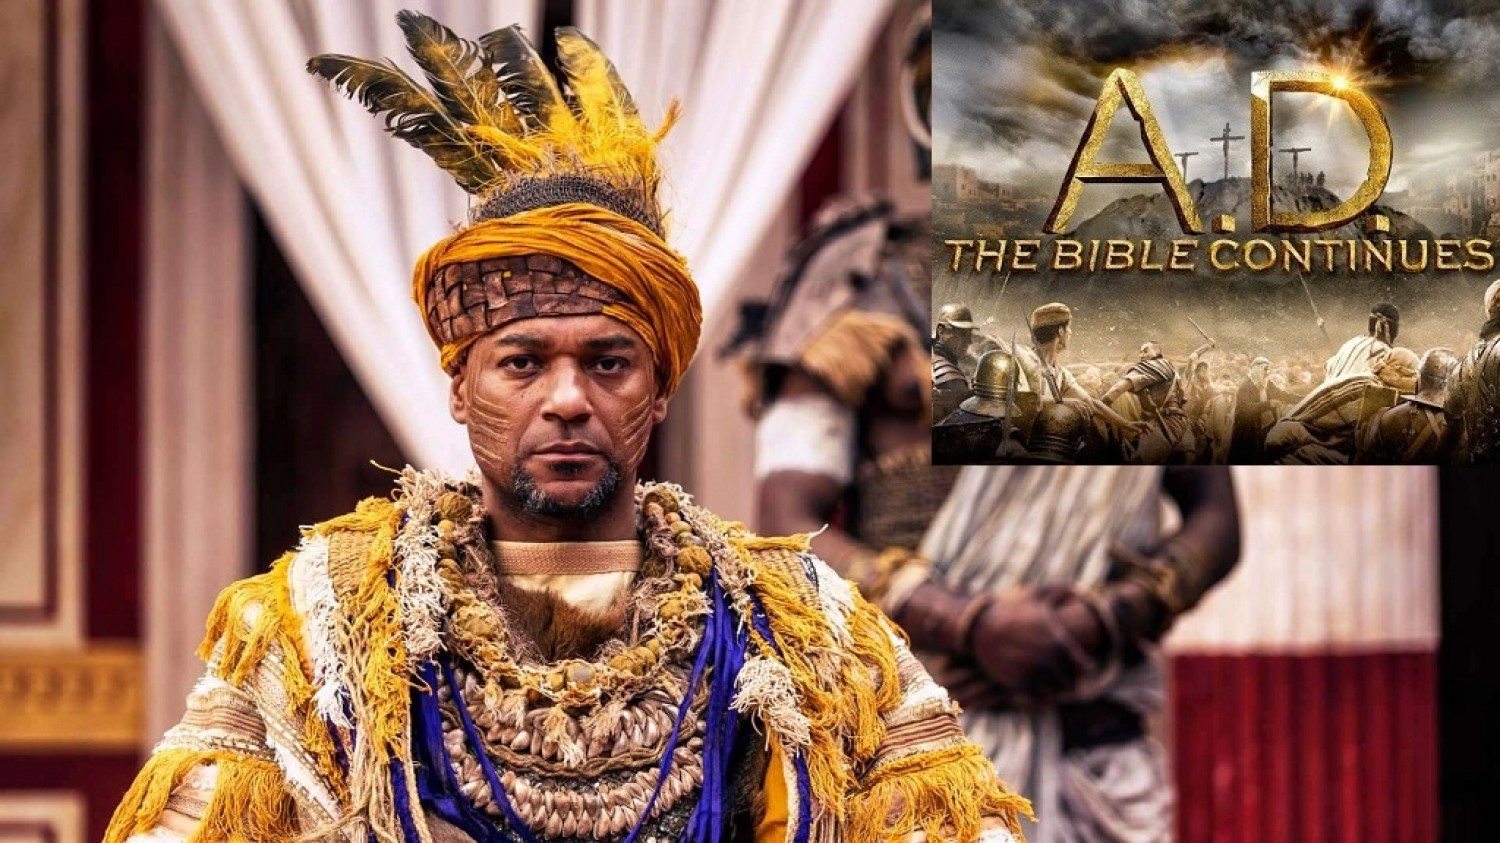 Recap & Review - Episode 10 / A.D. The Bible Continues